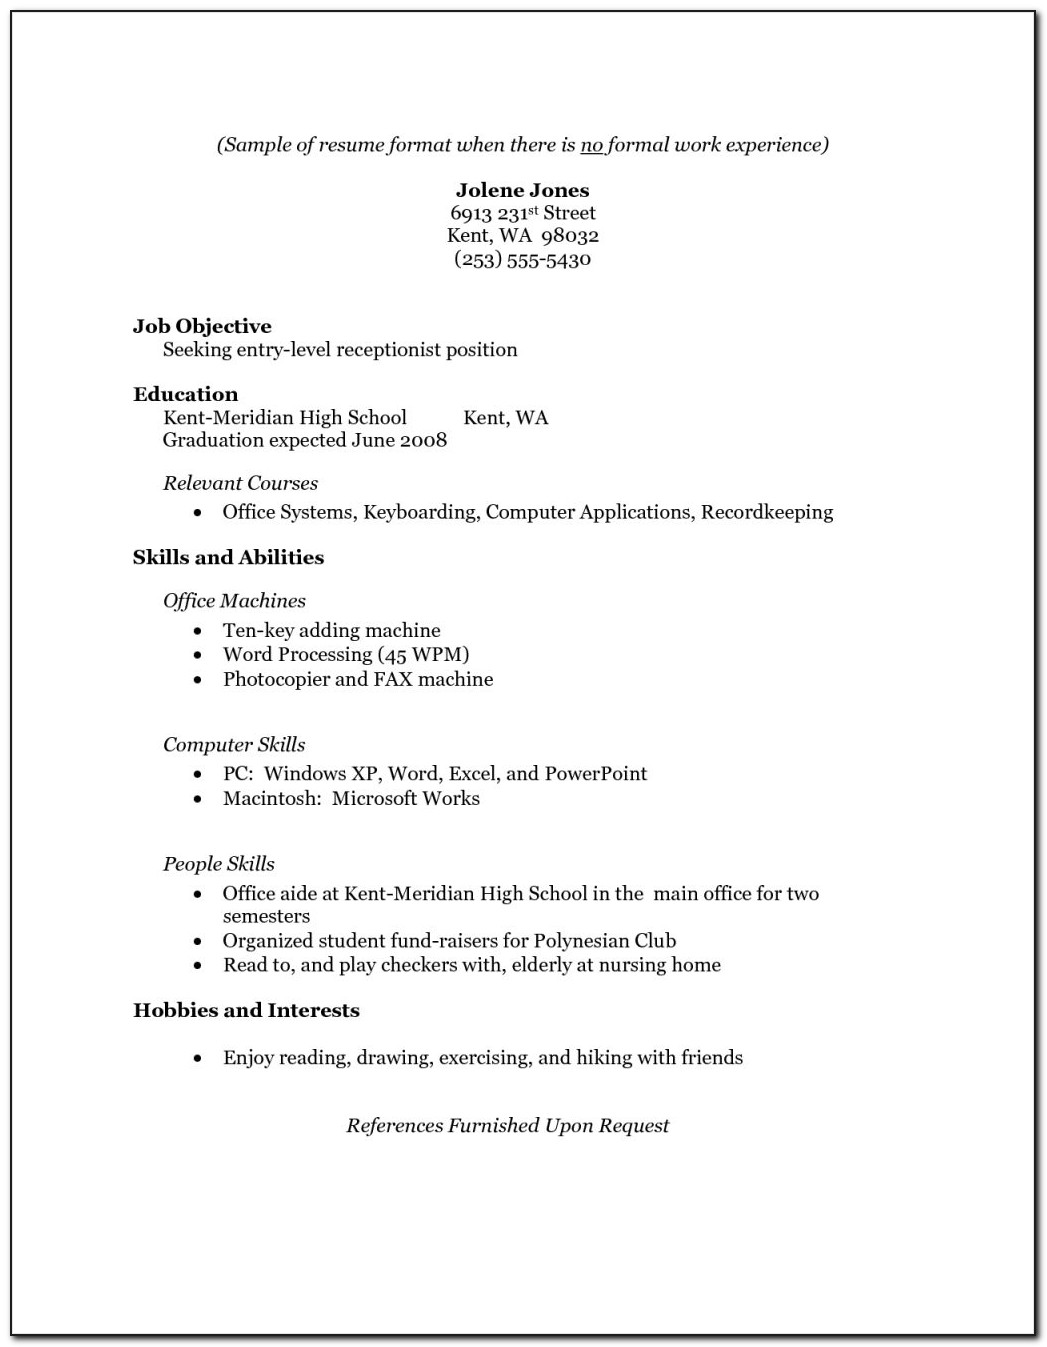 Sample Resume For Students Still In College With No Experience